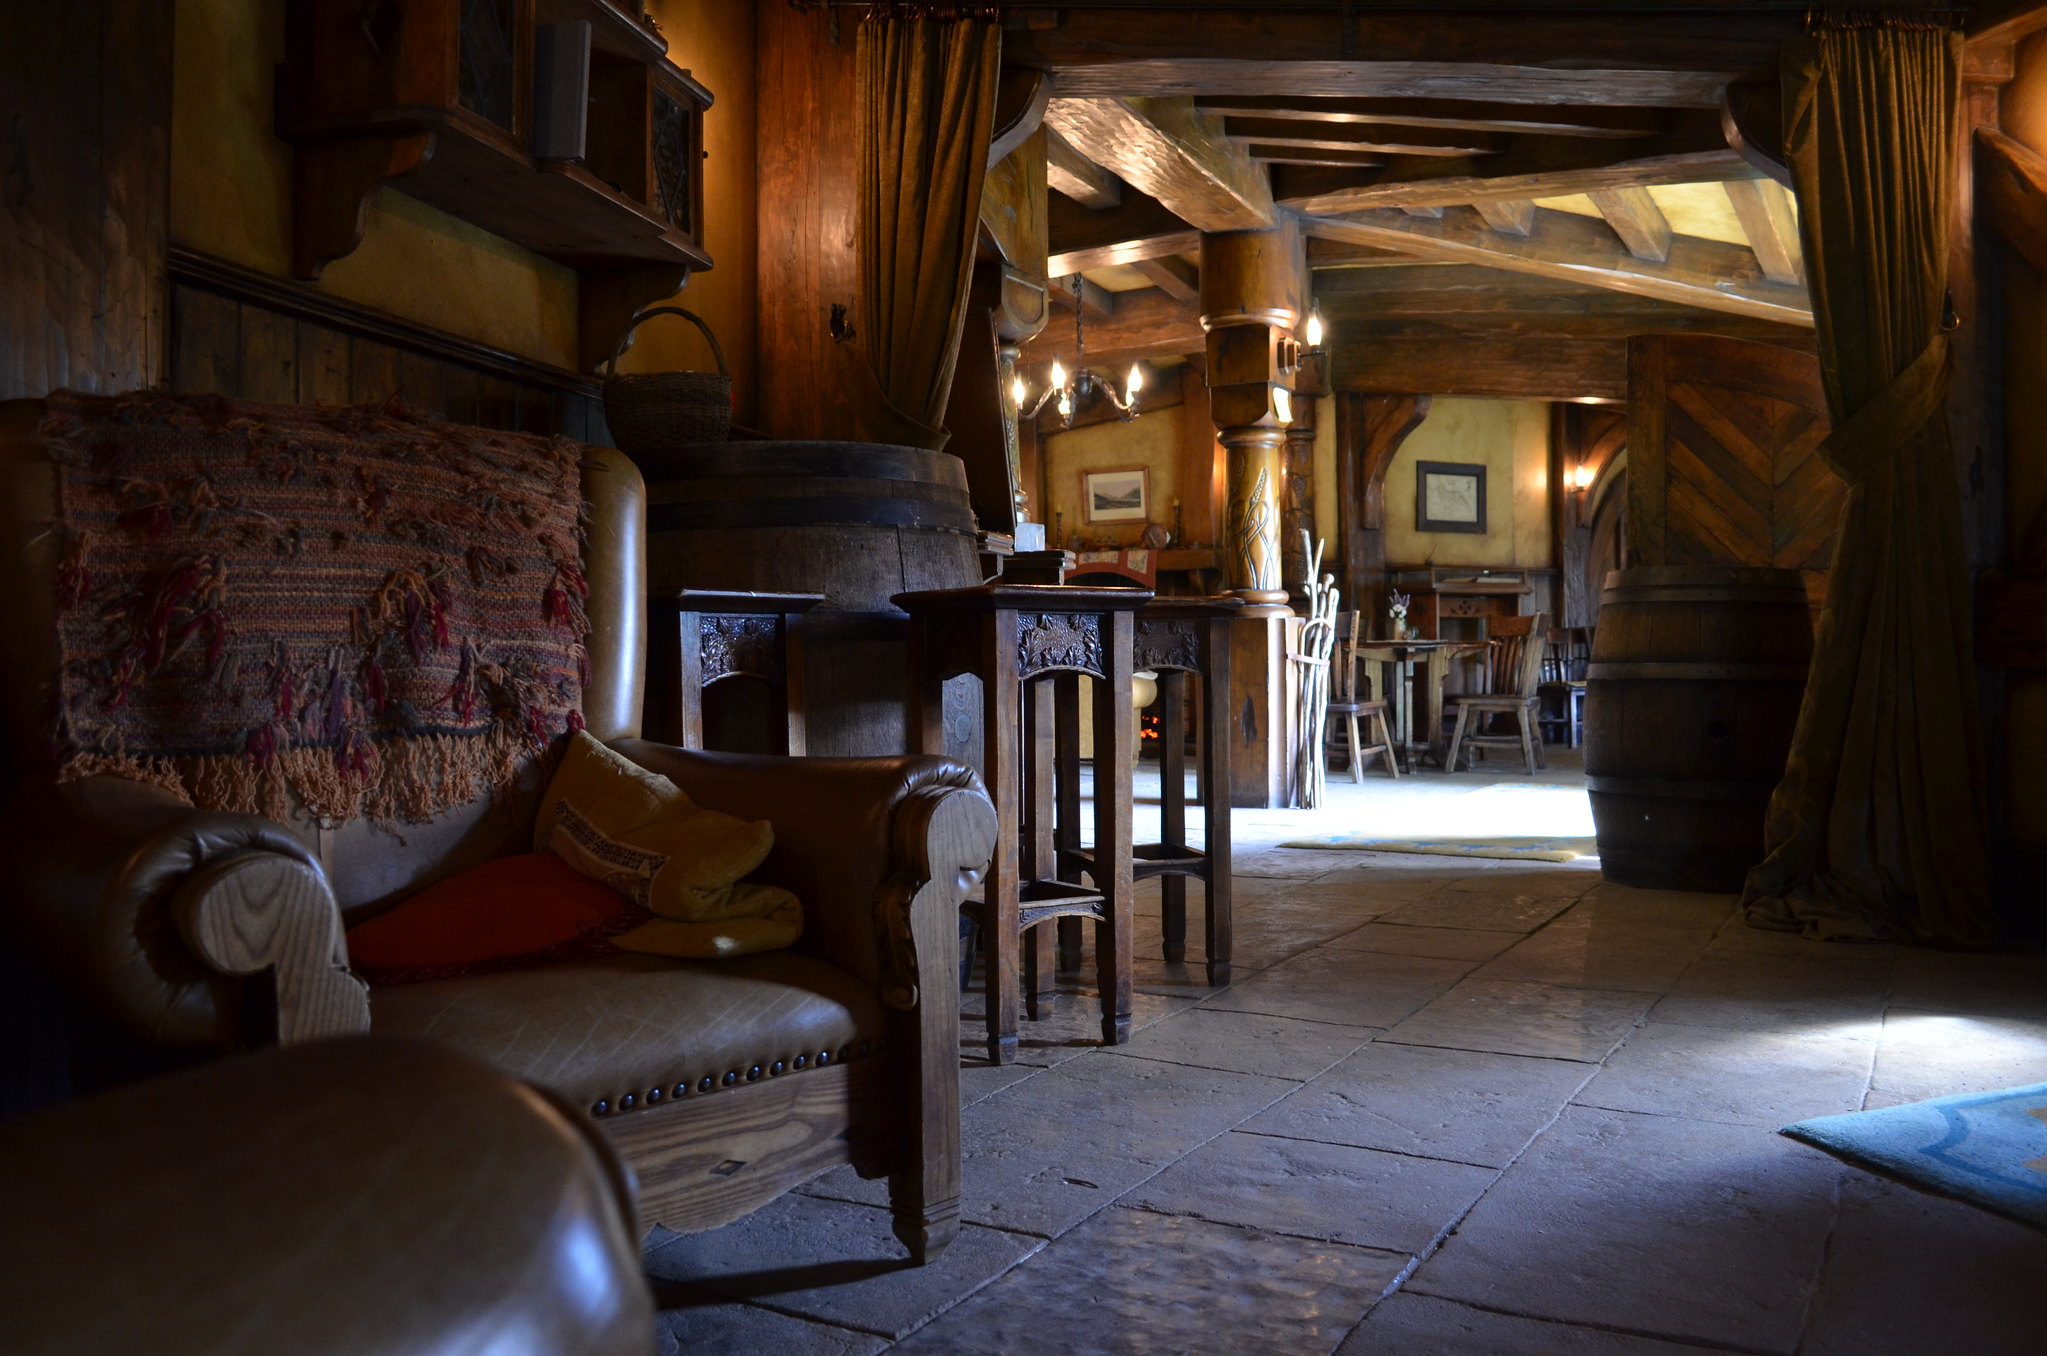 Interior of The Green Dragon